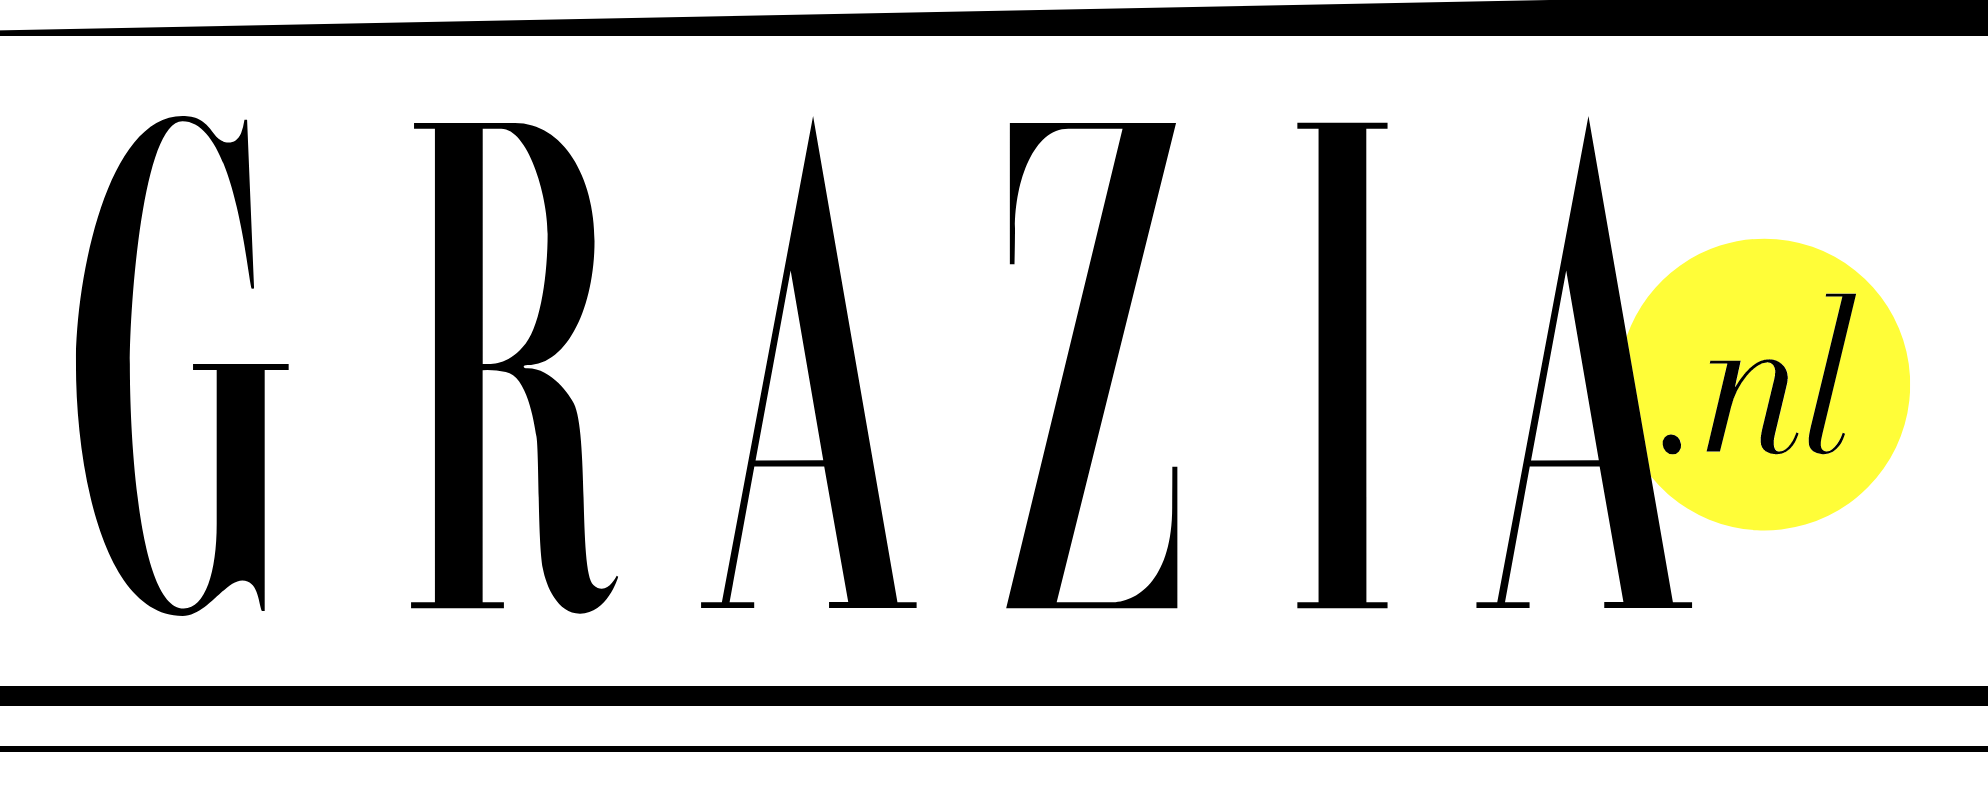 Grazia's weekend tips - By Danique. on December 13, 2018